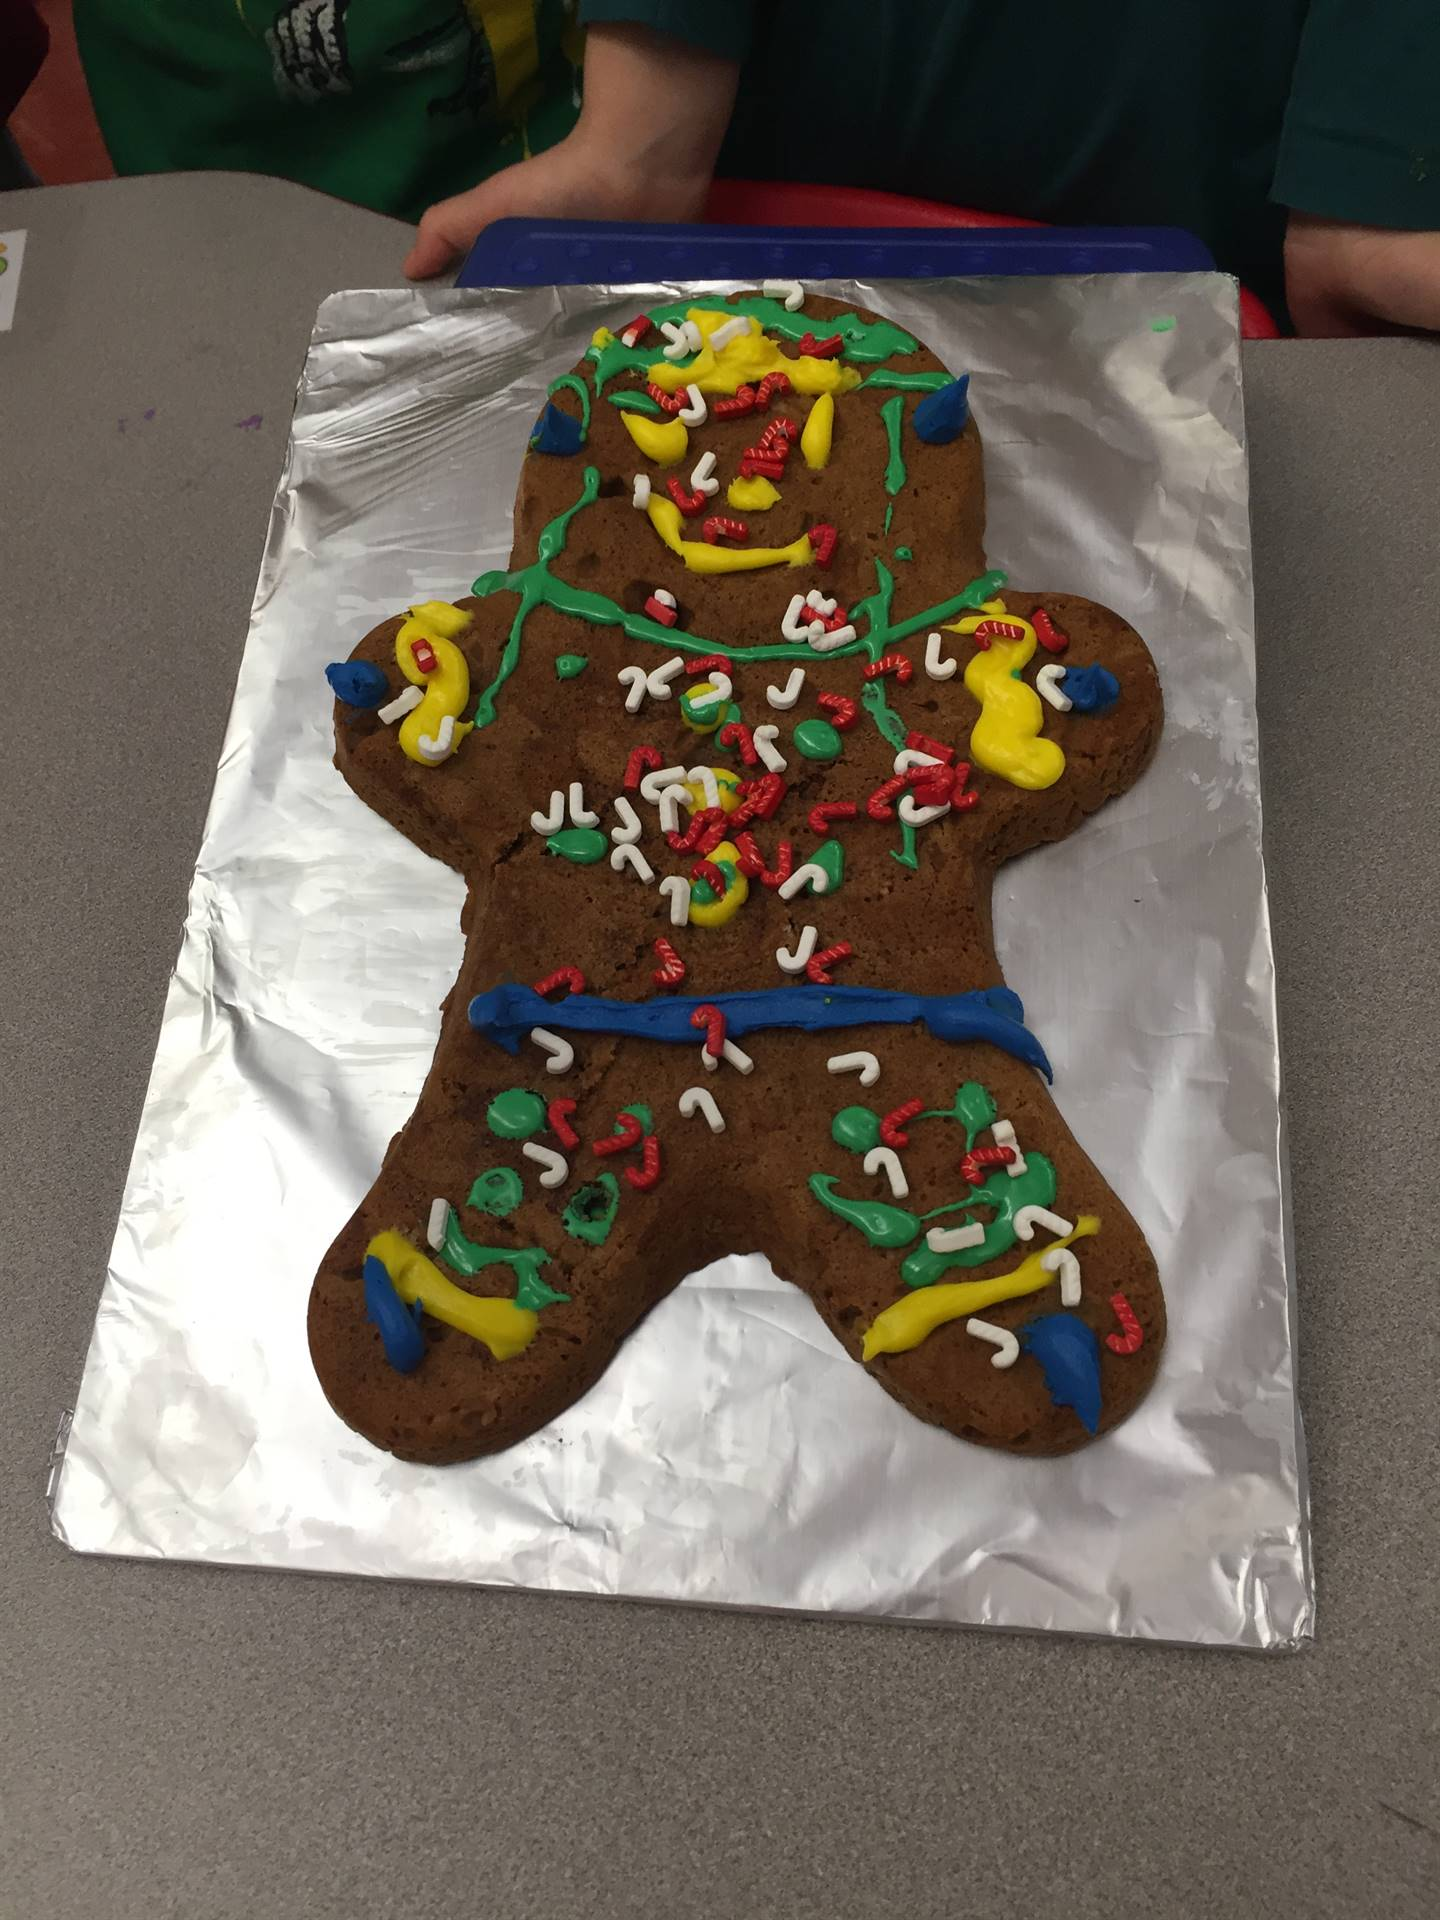 Fun day making & decorating Gingerbread men!